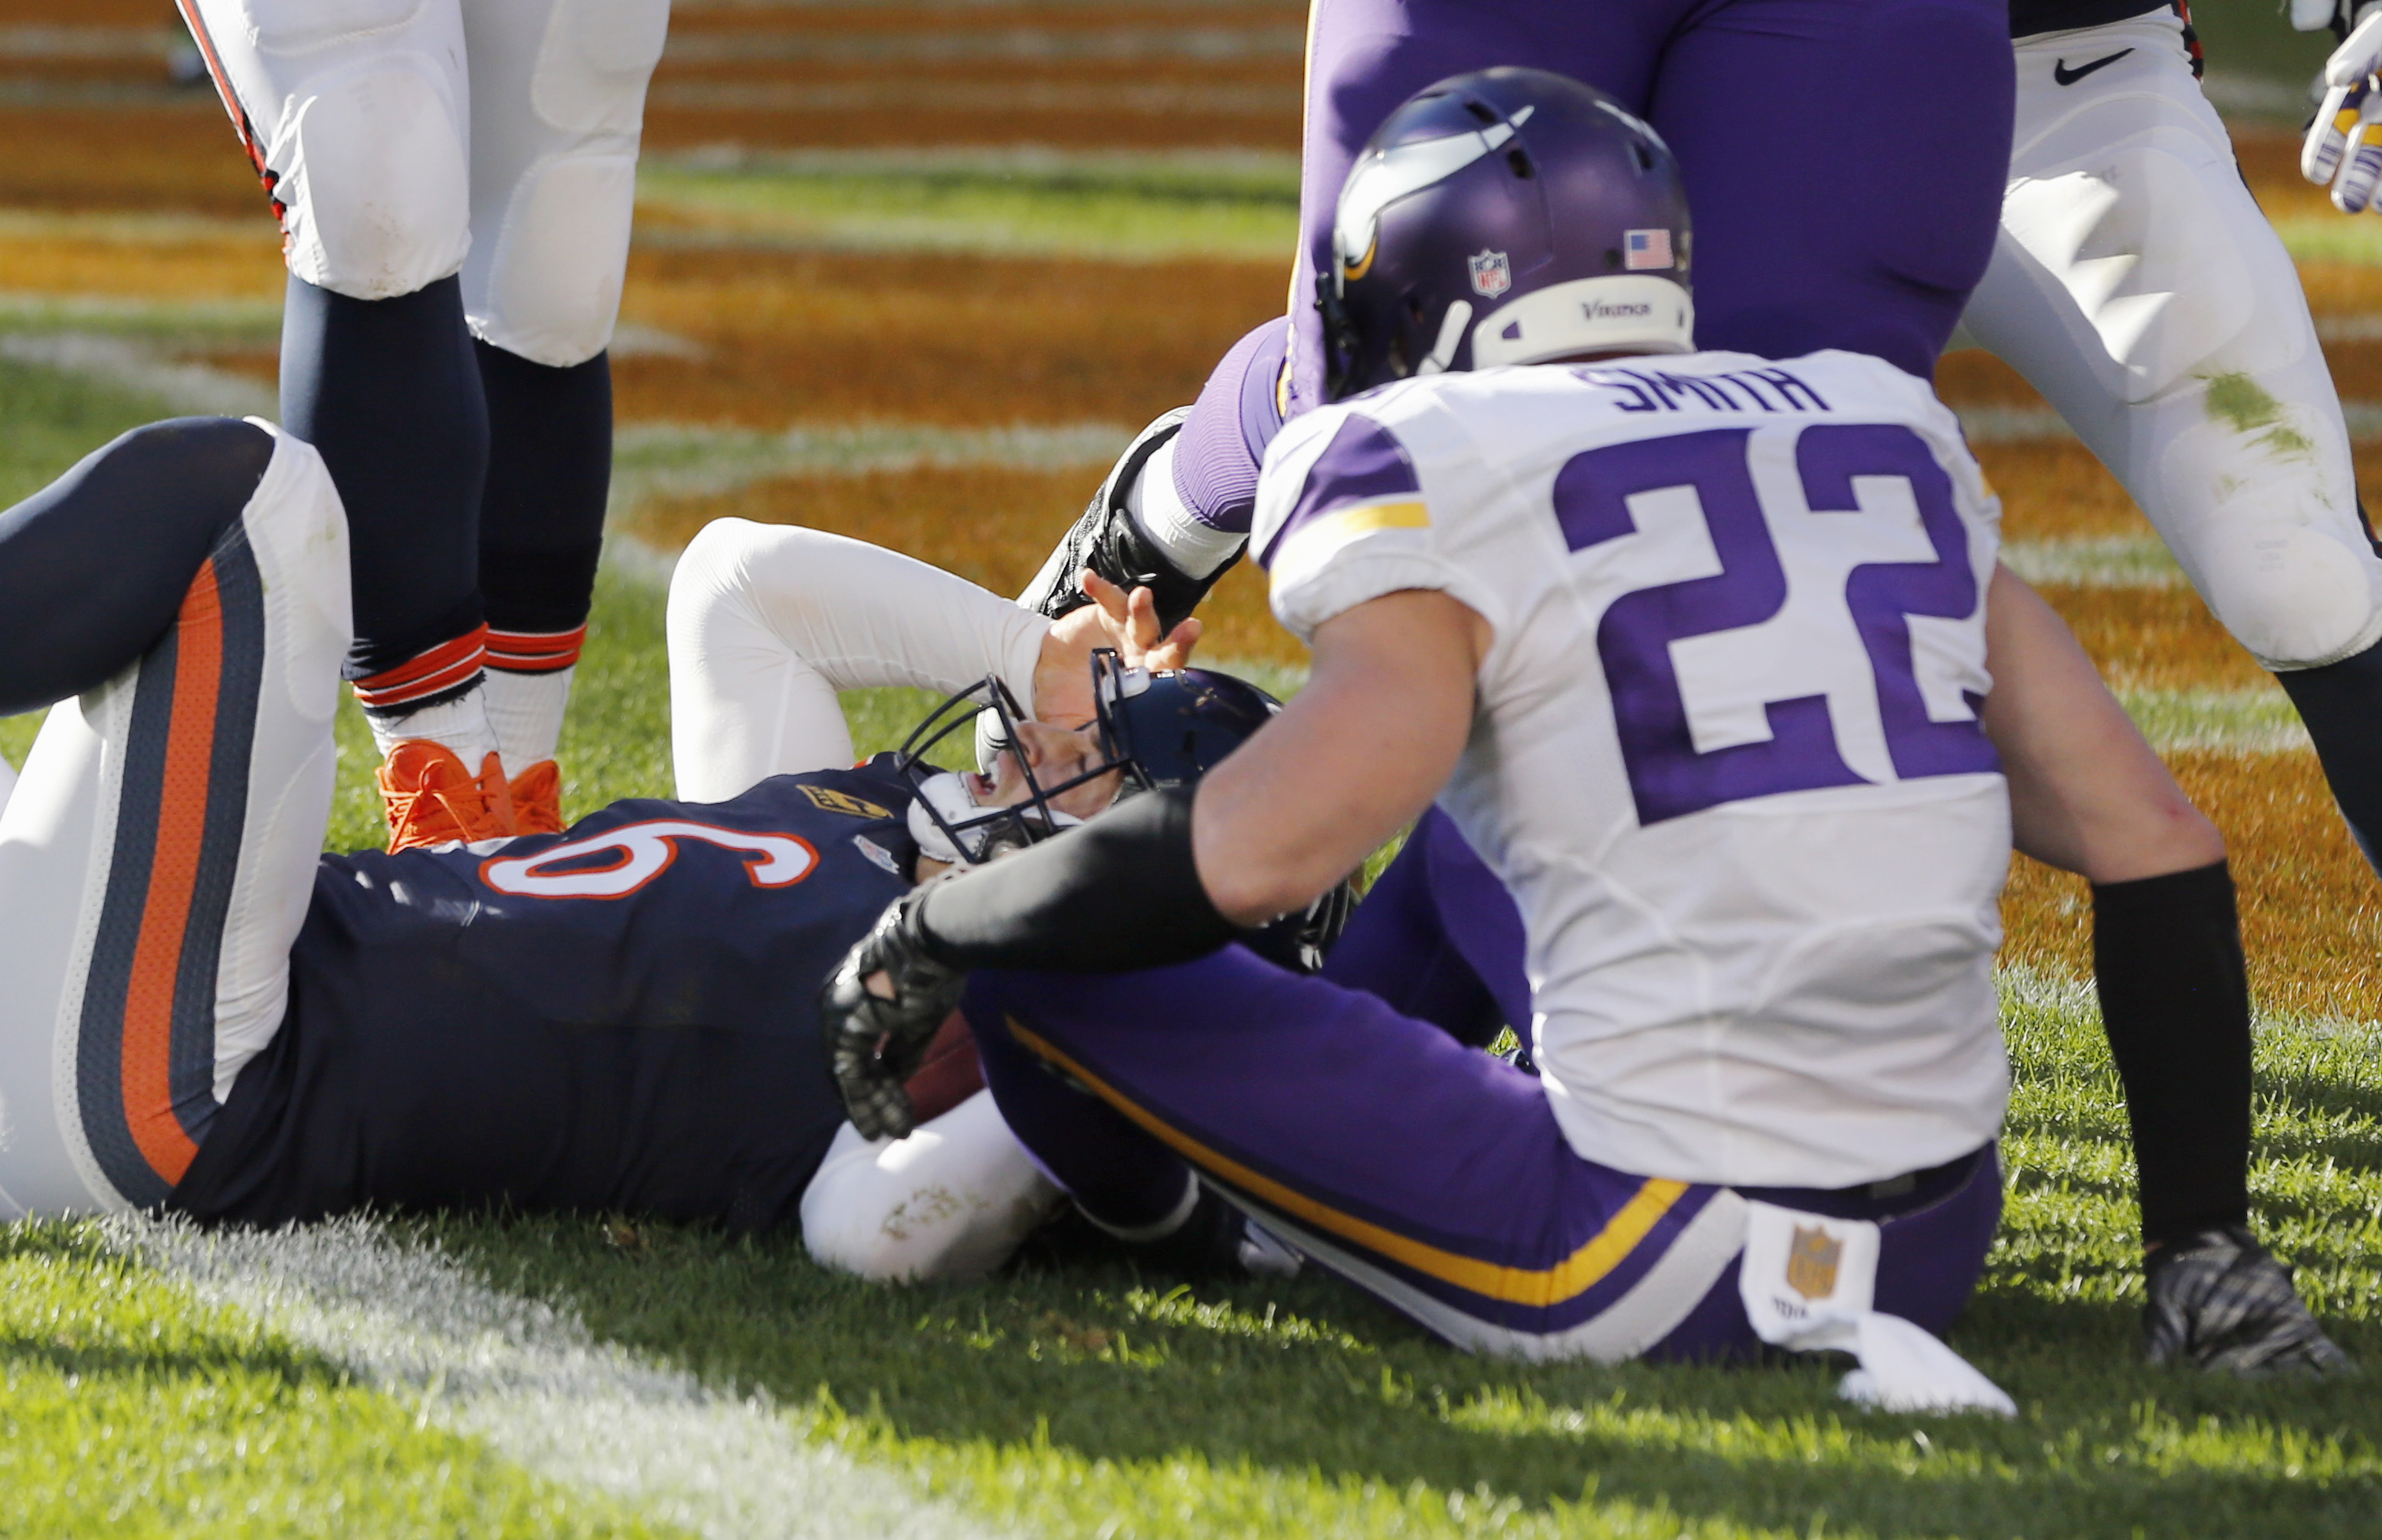 Chicago Bears quarterback Jay Cutler (6) reacts after diving into the end zone for a touchdown against Minnesota Vikings safety Harrison Smith (22) during the second half of an NFL football game, Sunday, Nov. 1, 2015, in Chicago. (AP Photo/Charles Rex Arb